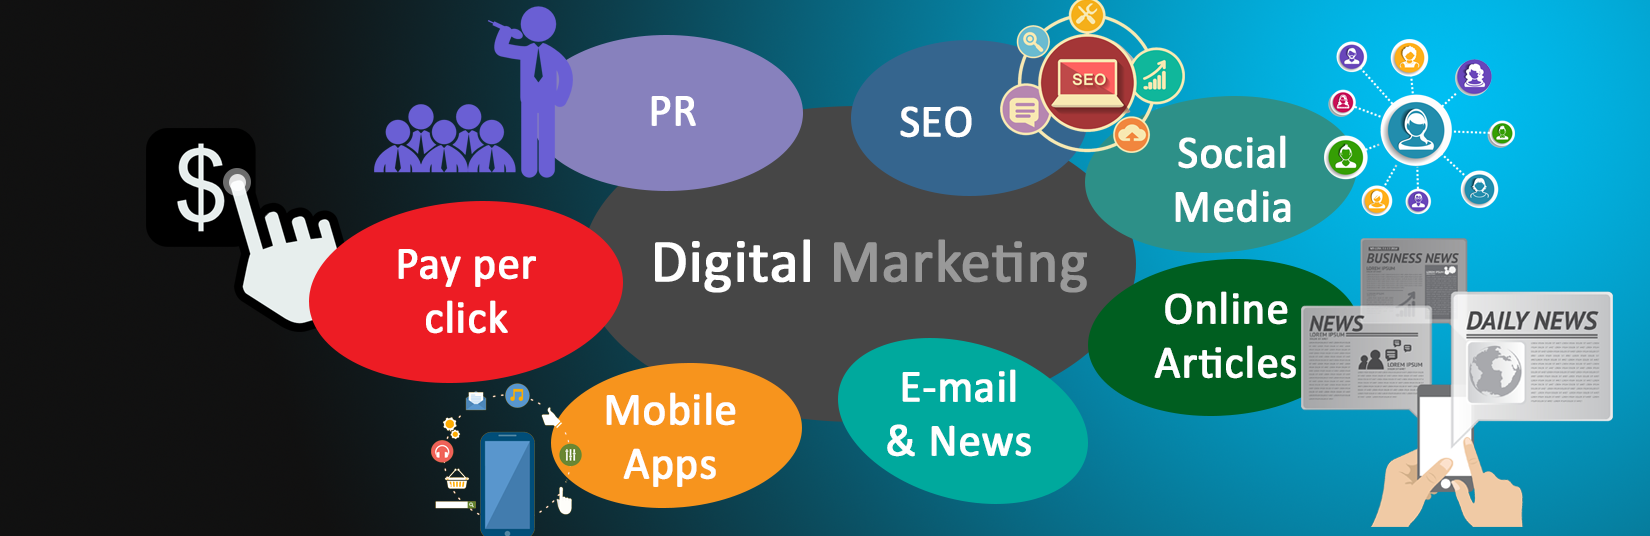 Future of Digital Marketing in India  Digital Marketing India